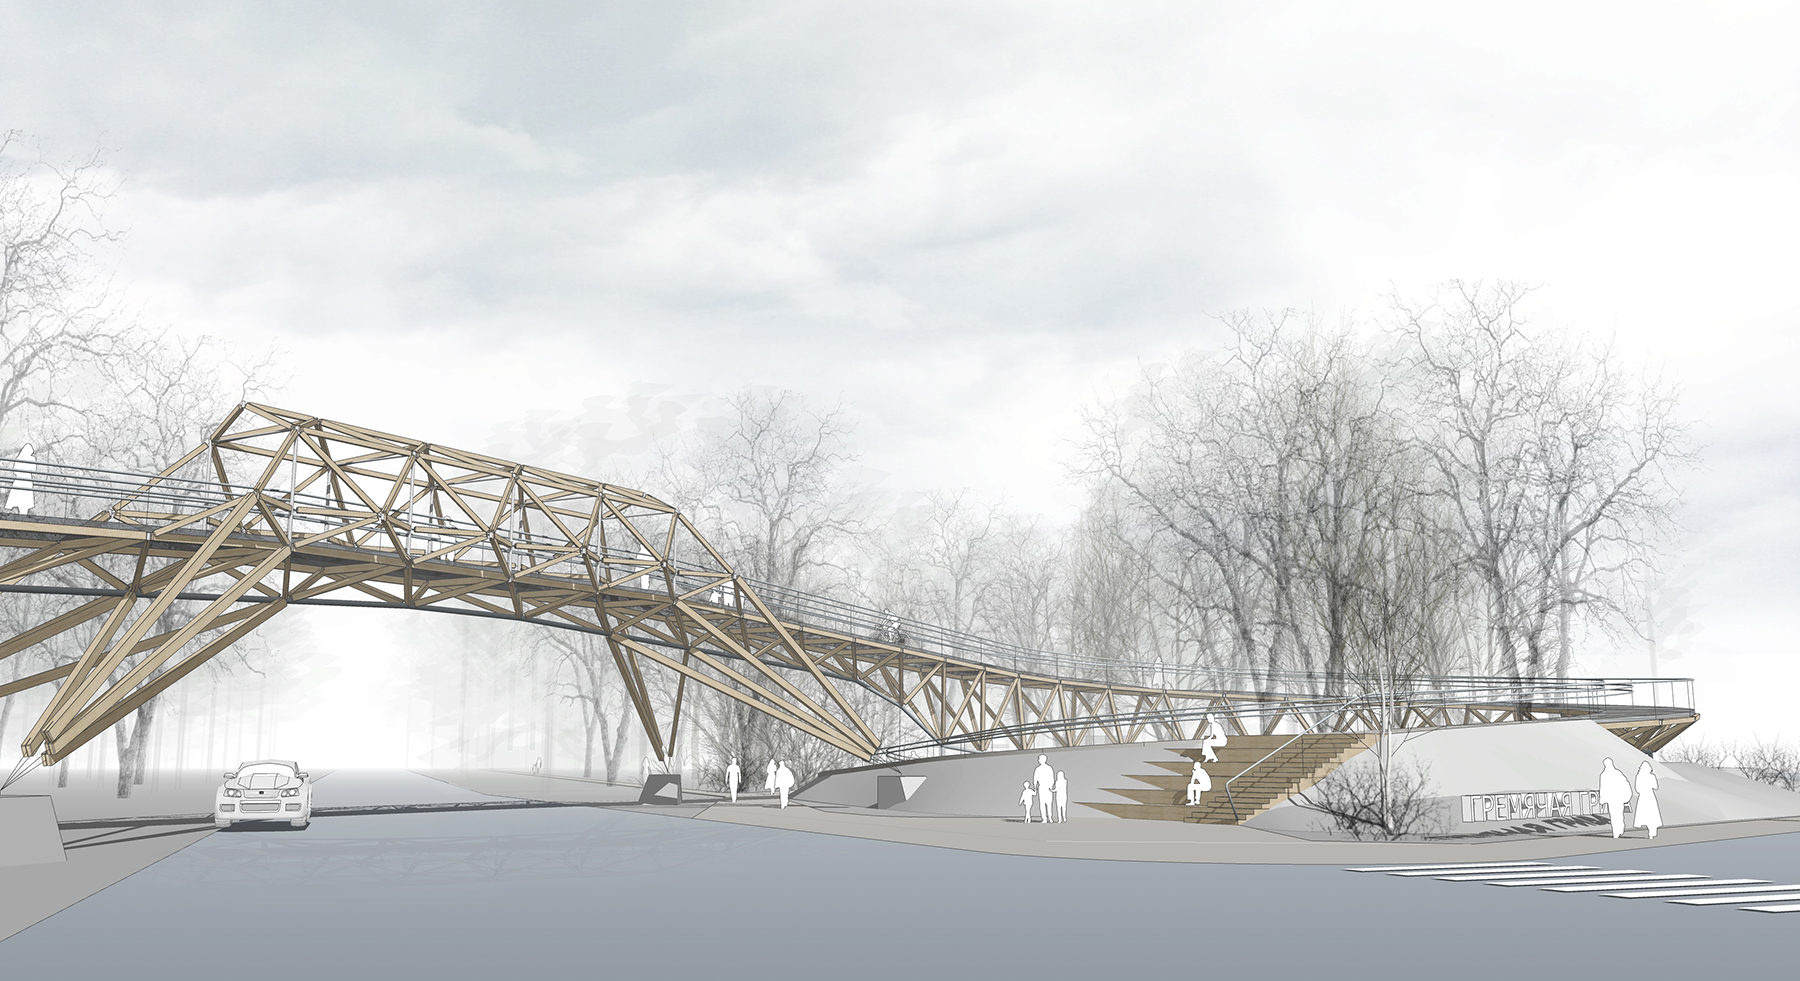 CONCEPT OF A PEDESTRIAN BRIDGE IN ECO-PARK / KRASNOYARSK, SIBERIA